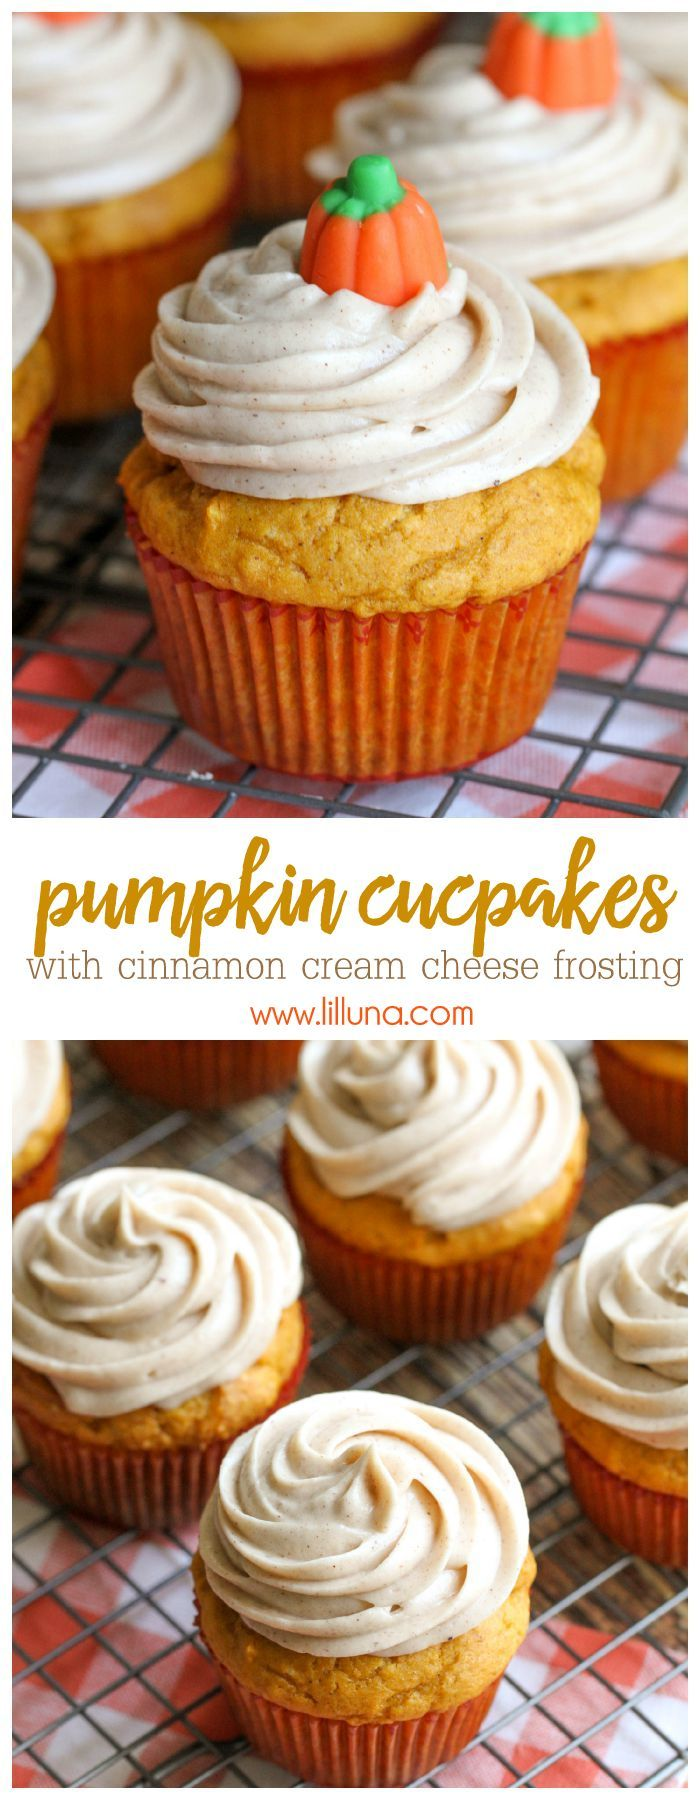 Delicious Pumpkin Cupcakes with Cinnamon Cream Cheese Frosting - the perfect…